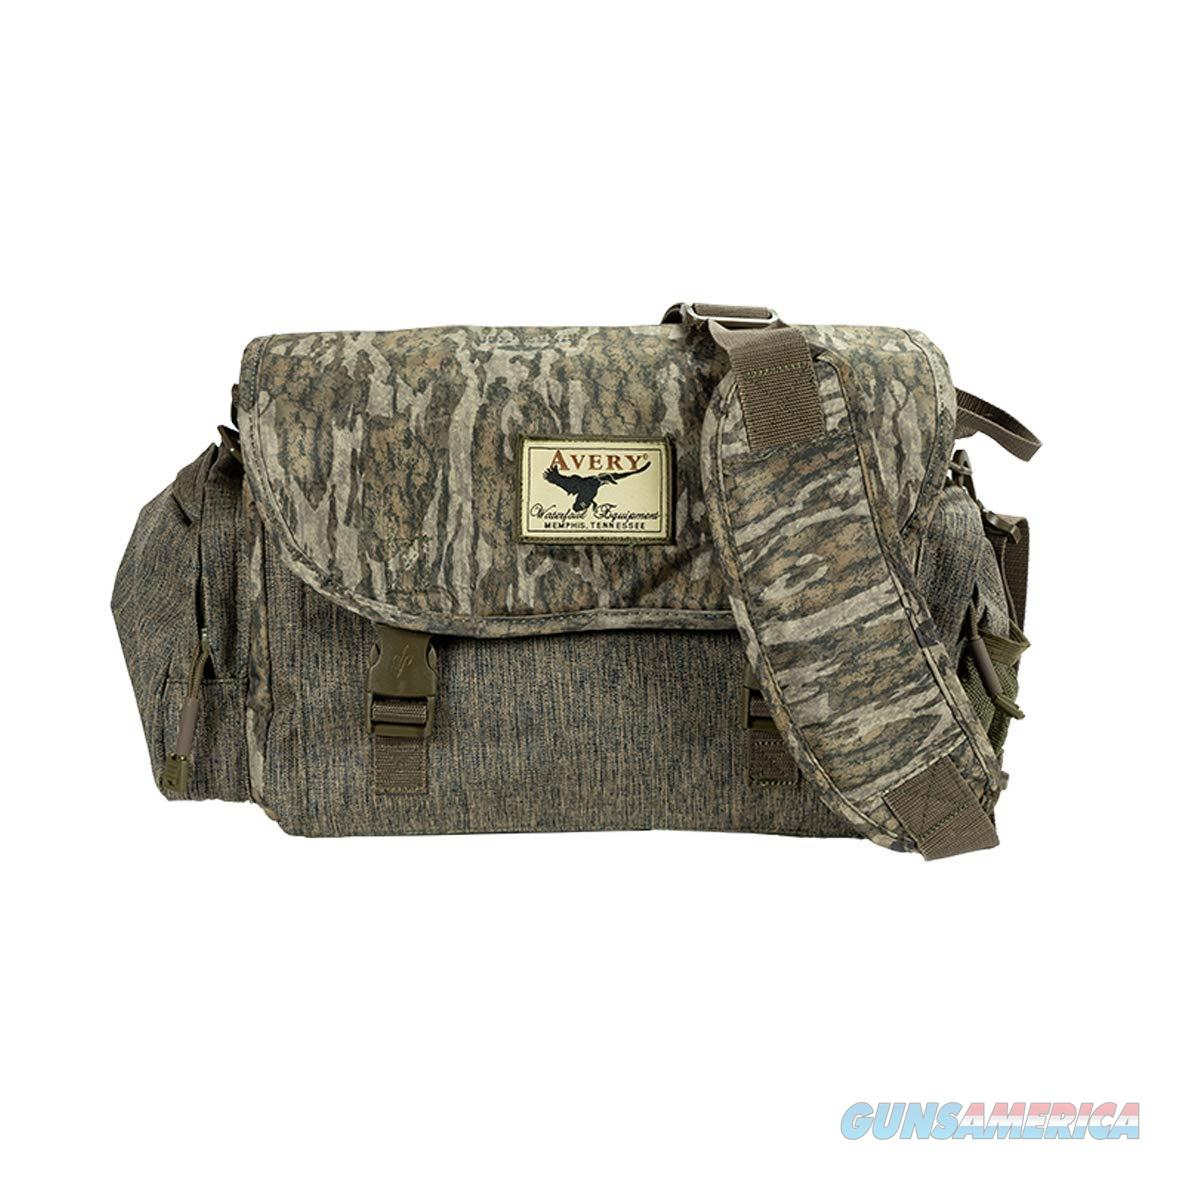 Avery Floating 2.0 Blind Bag Bottomland NEW  Non-Guns > Hunting Clothing and Equipment > Ammo Pouches/Holders/Shell Bags